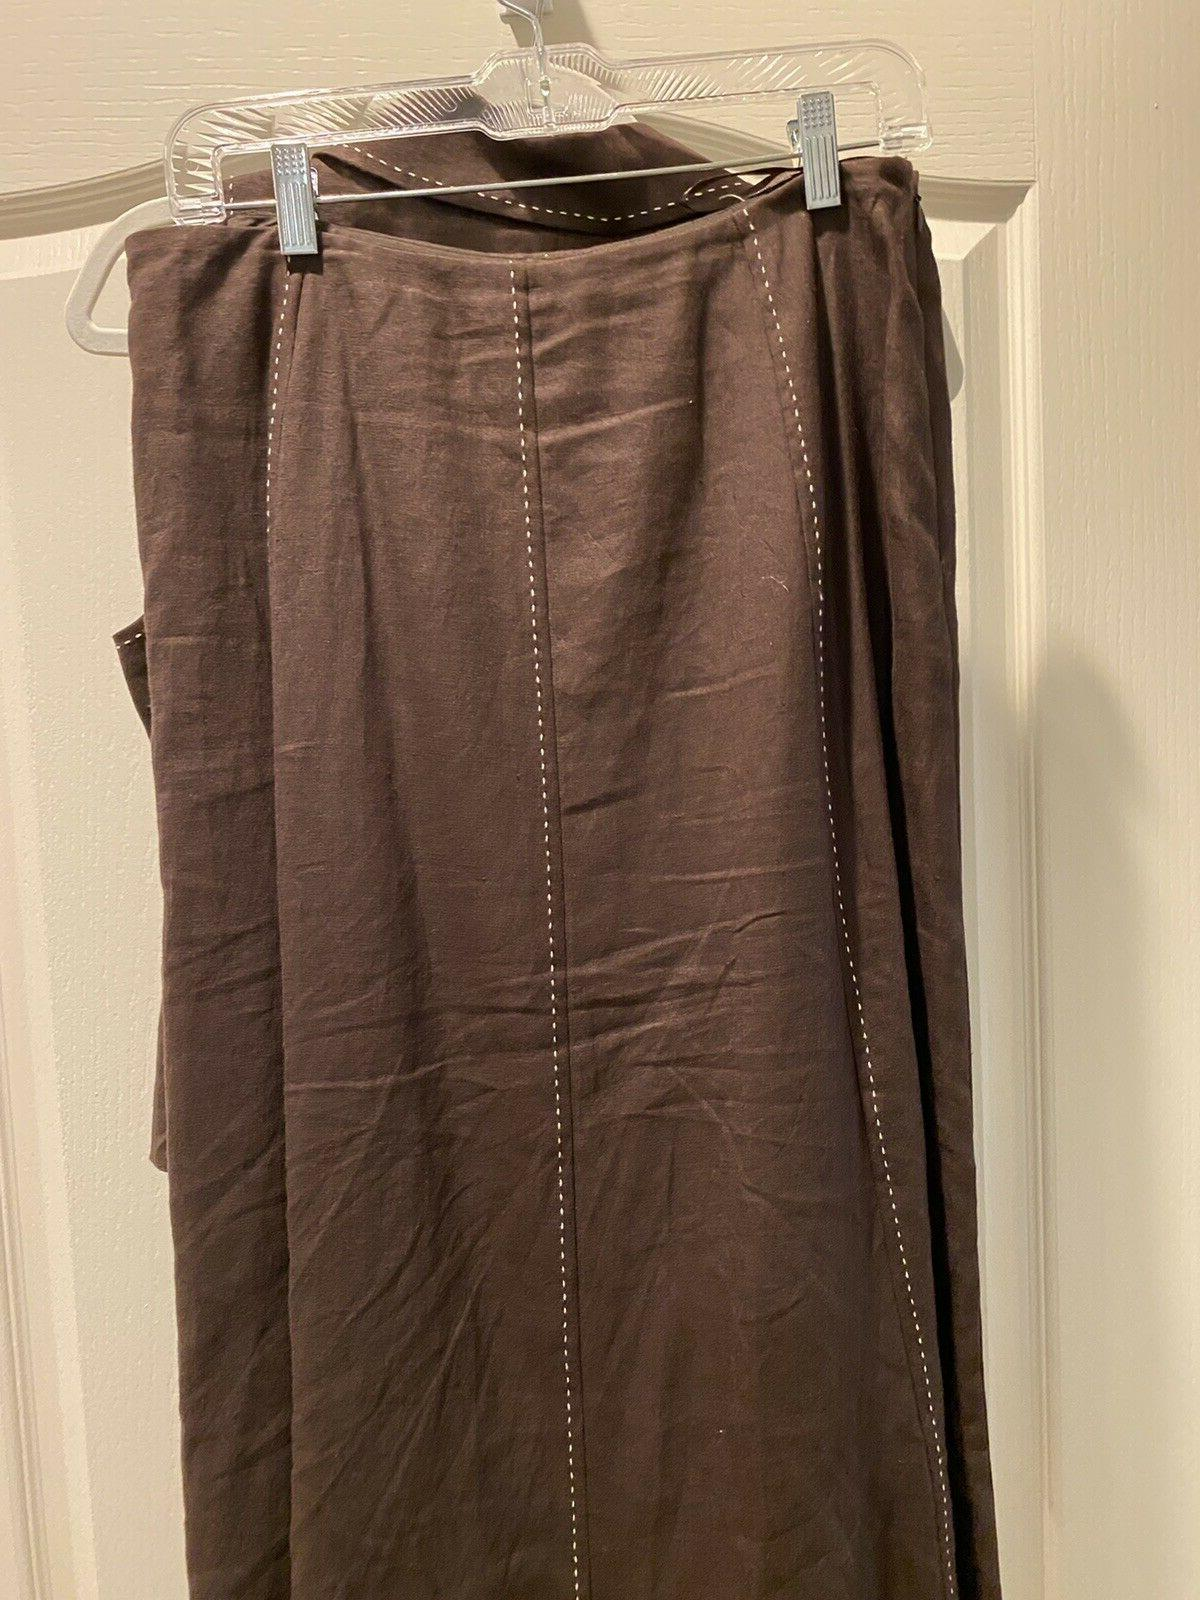 NWT, sleeveless skirt brown with top-stitch,